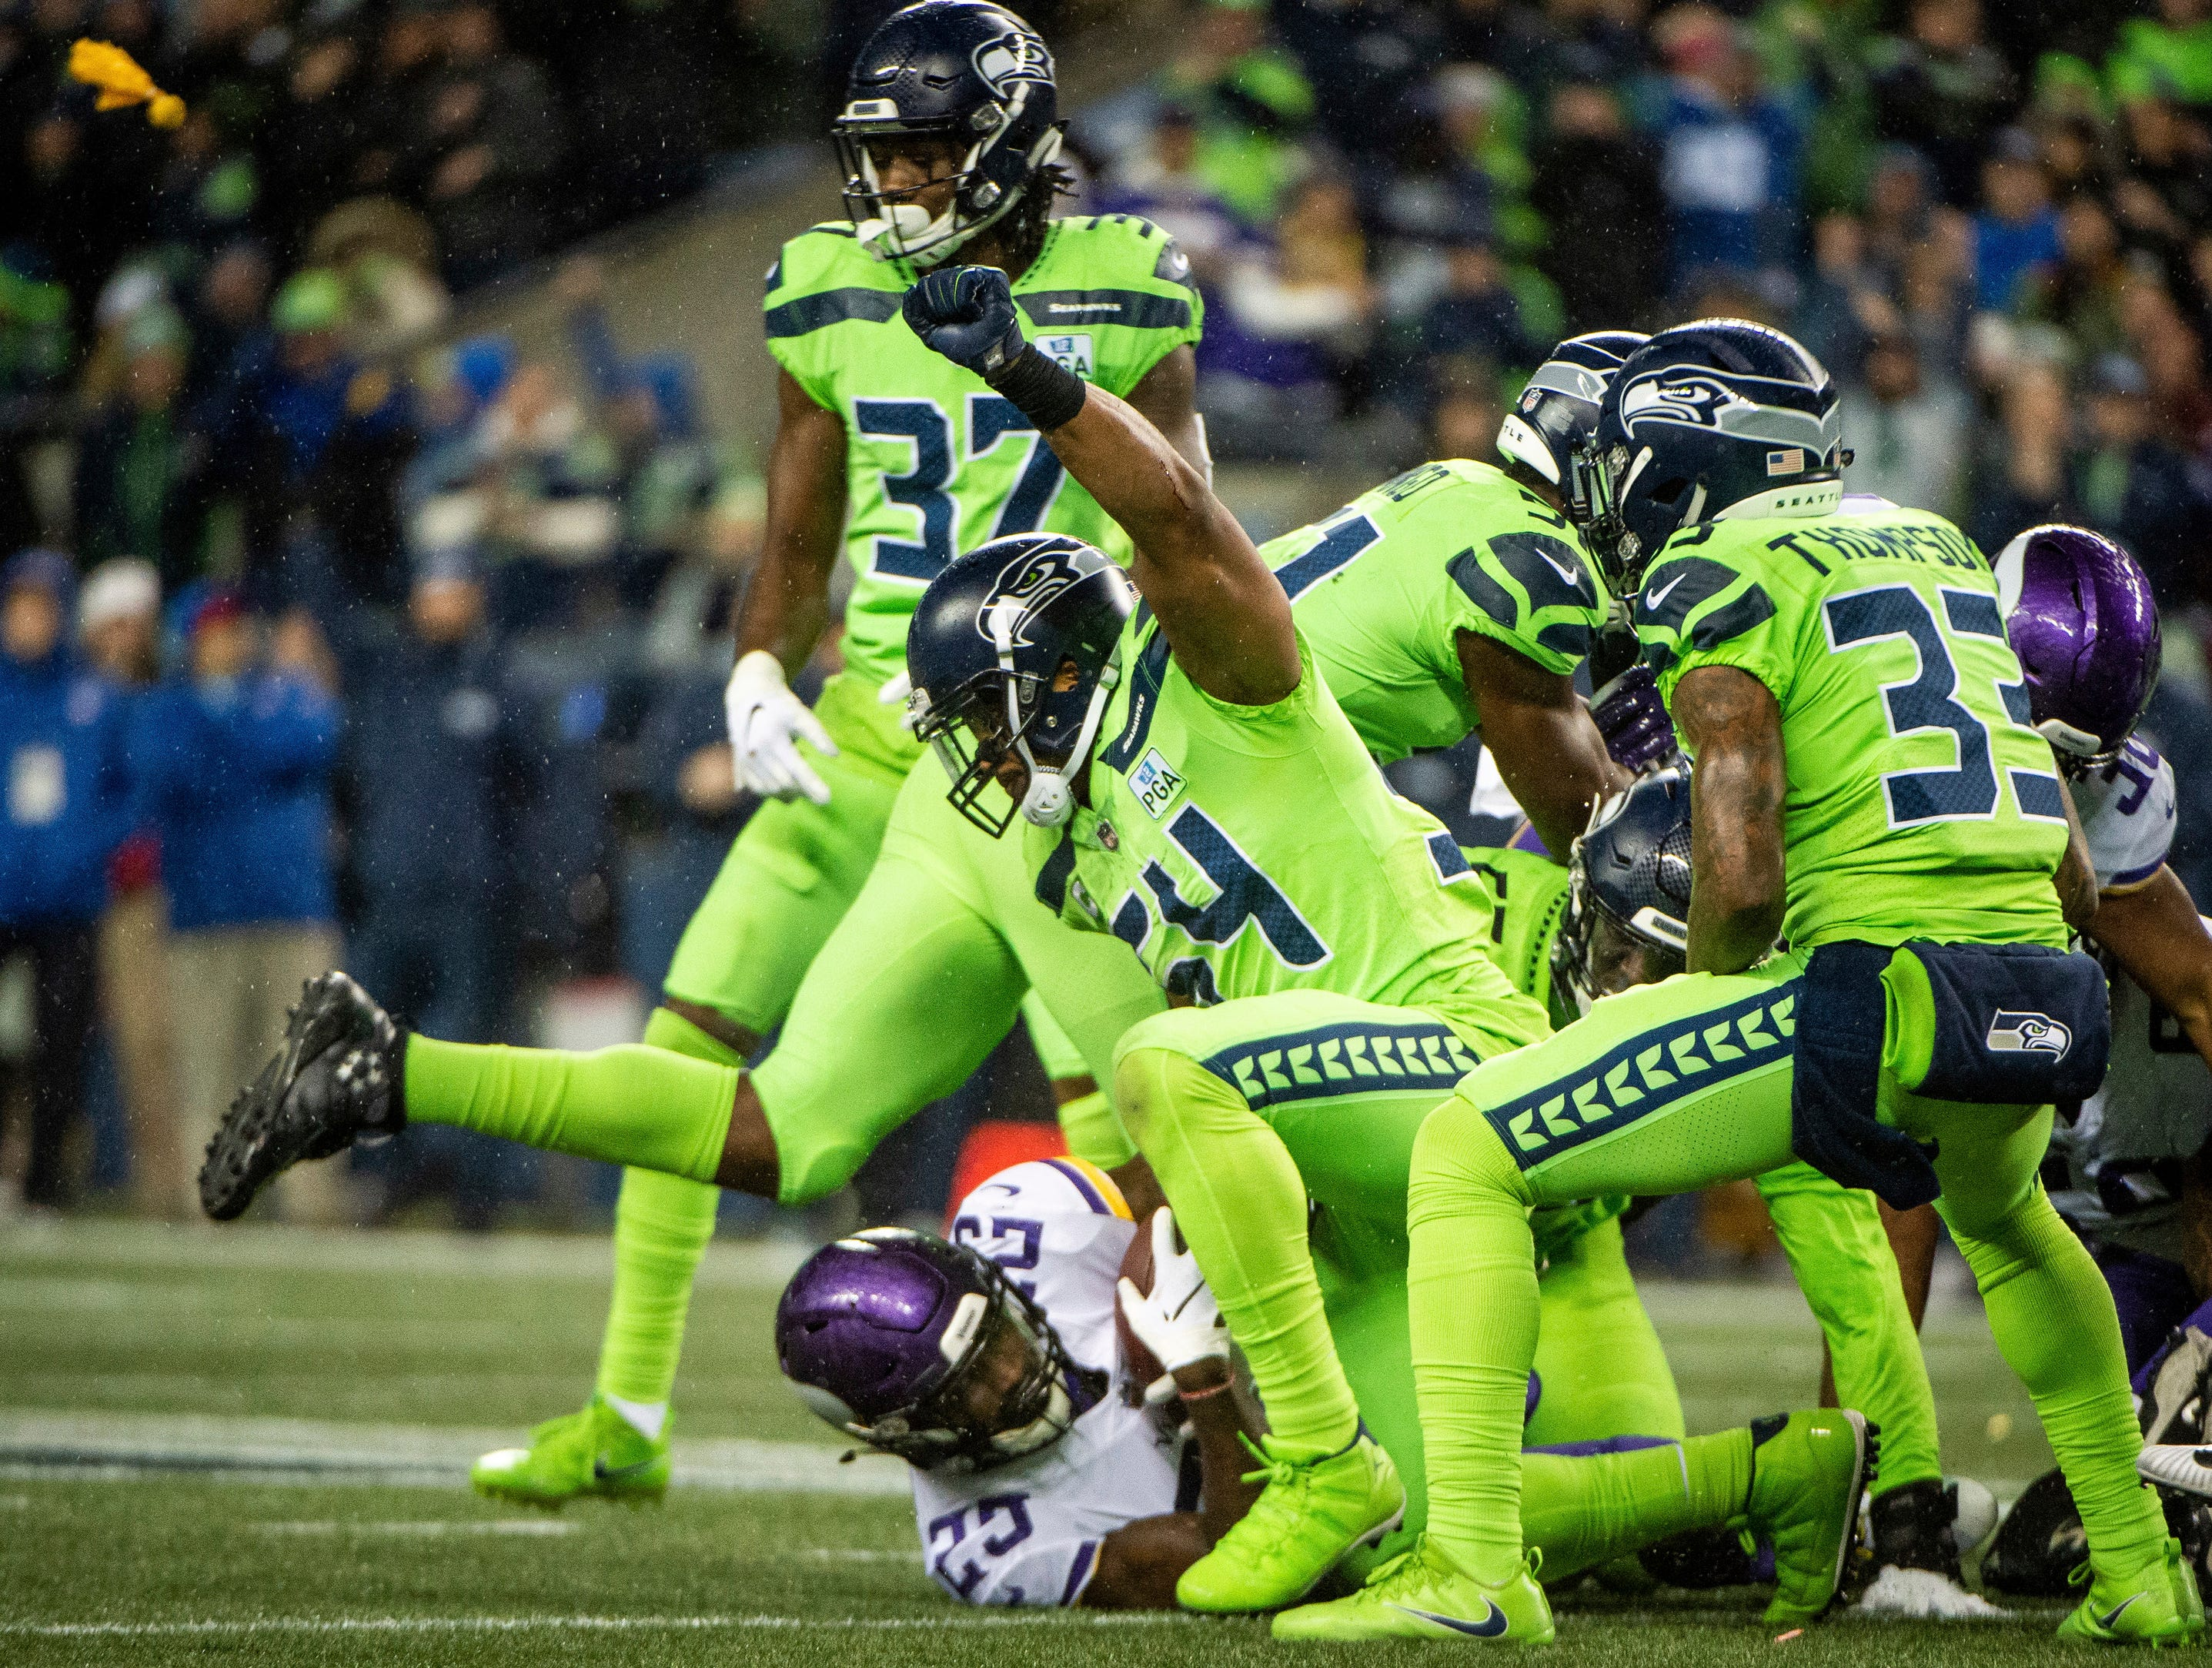 Another Monday night in Seattle ends with controversy